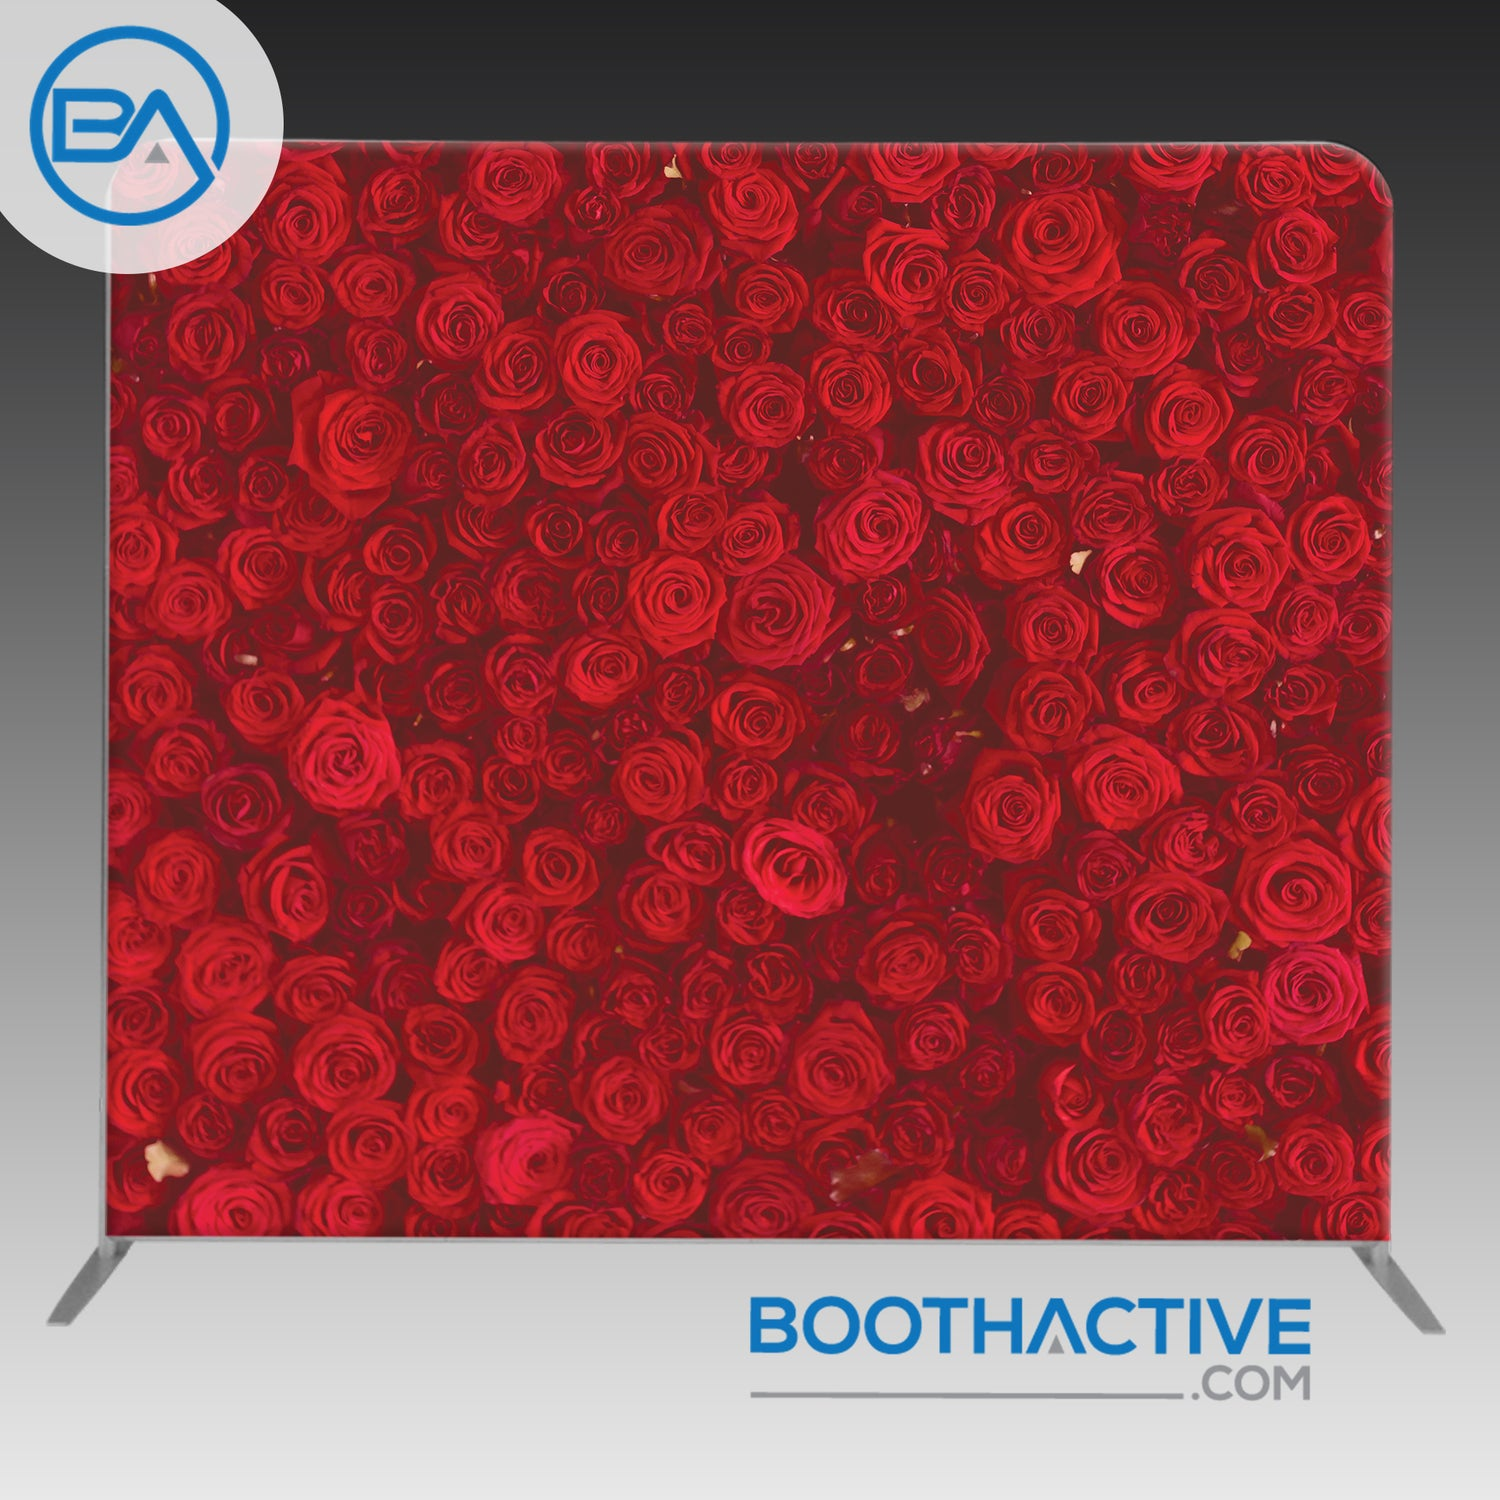 8' x 8' Backdrop - Red Roses